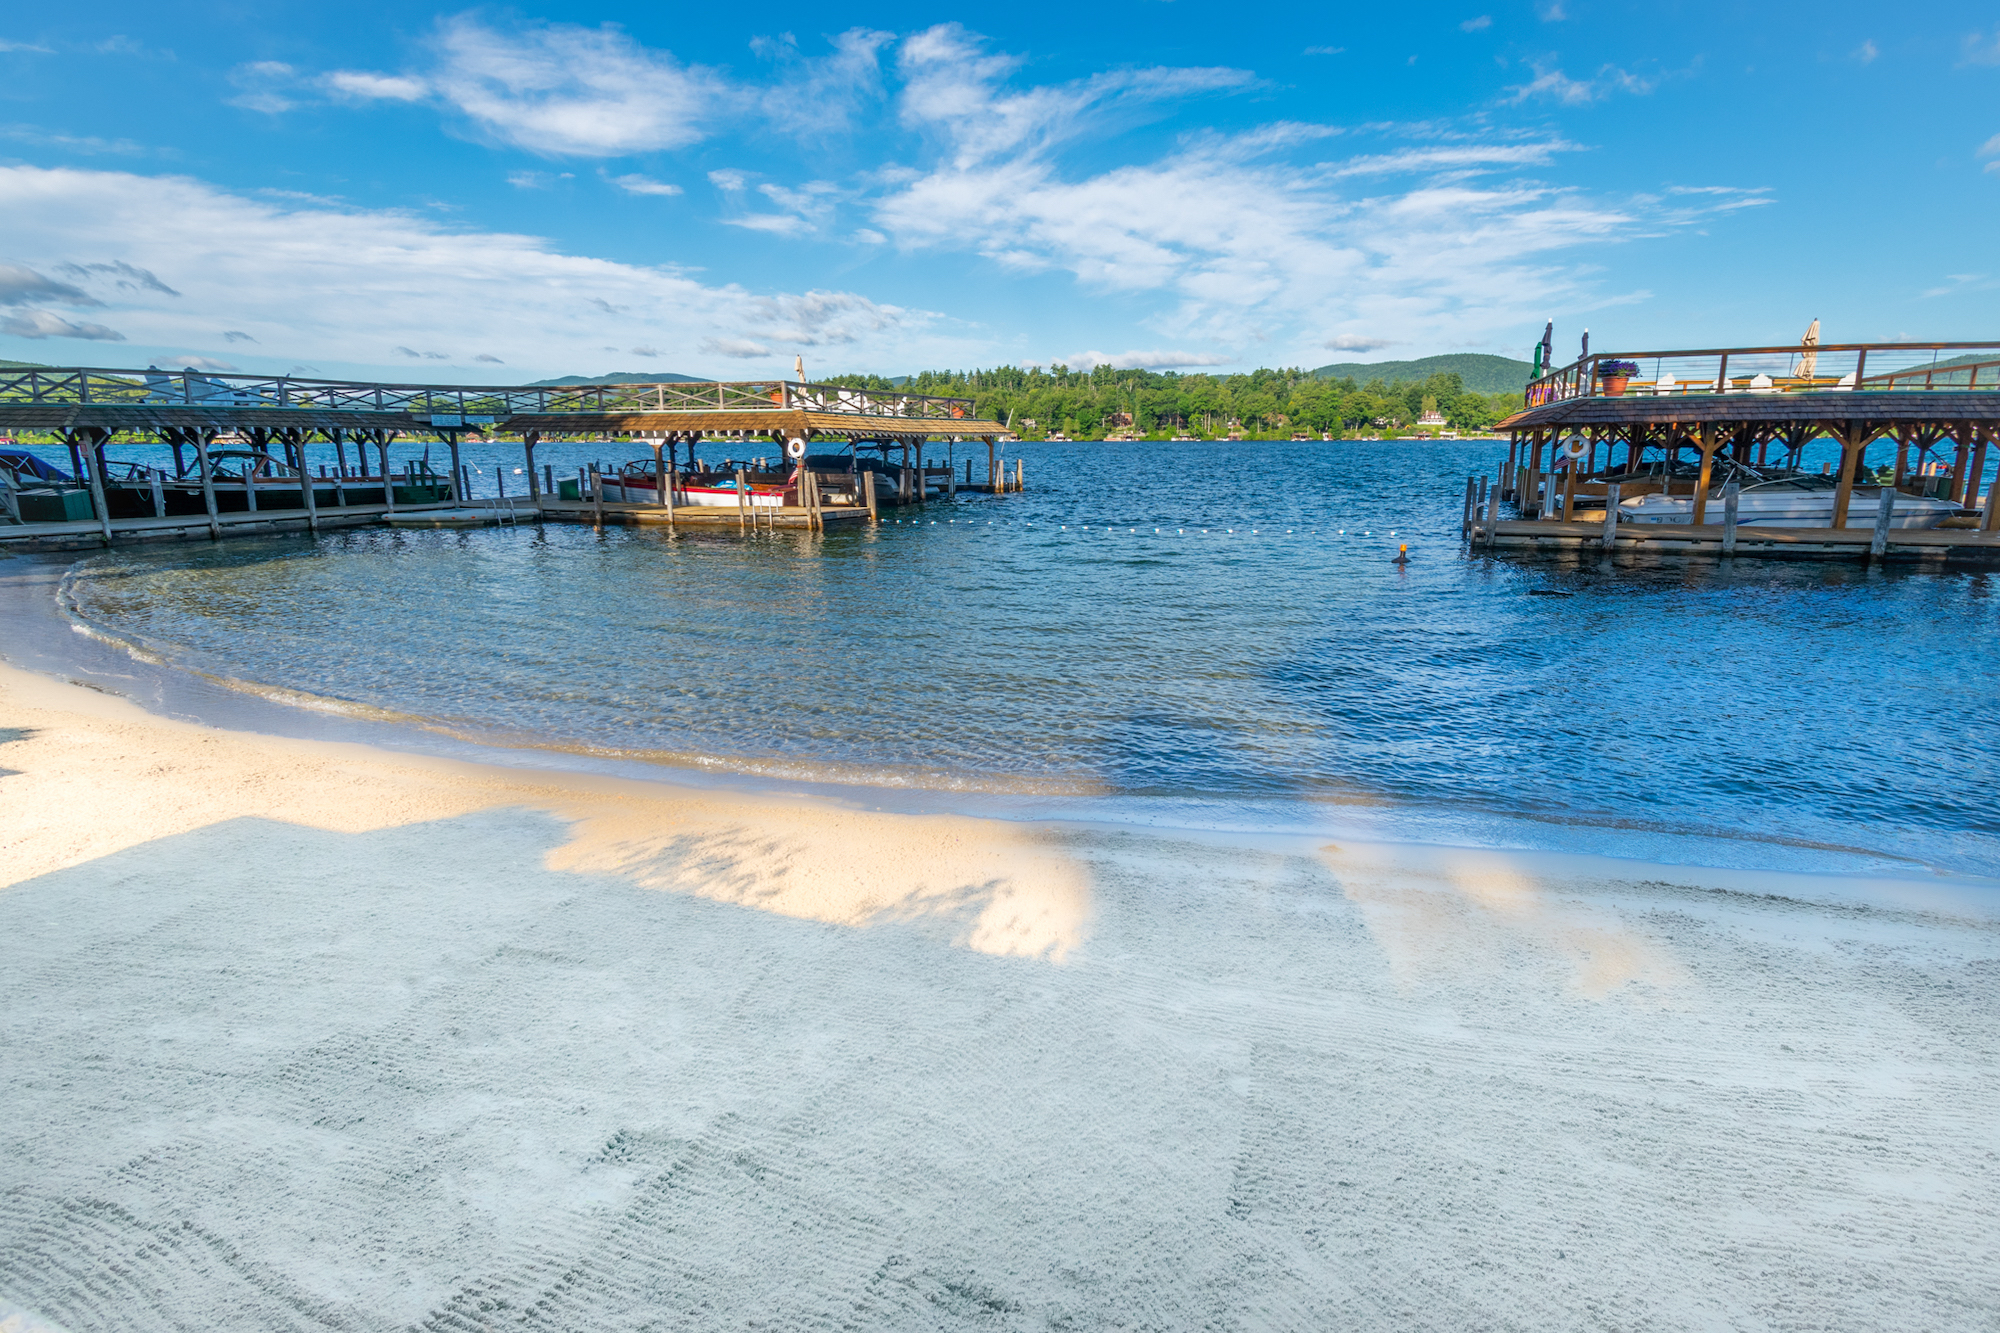 Lake George vacation cabin rentals with large sandy beach at Takundewide Cottages